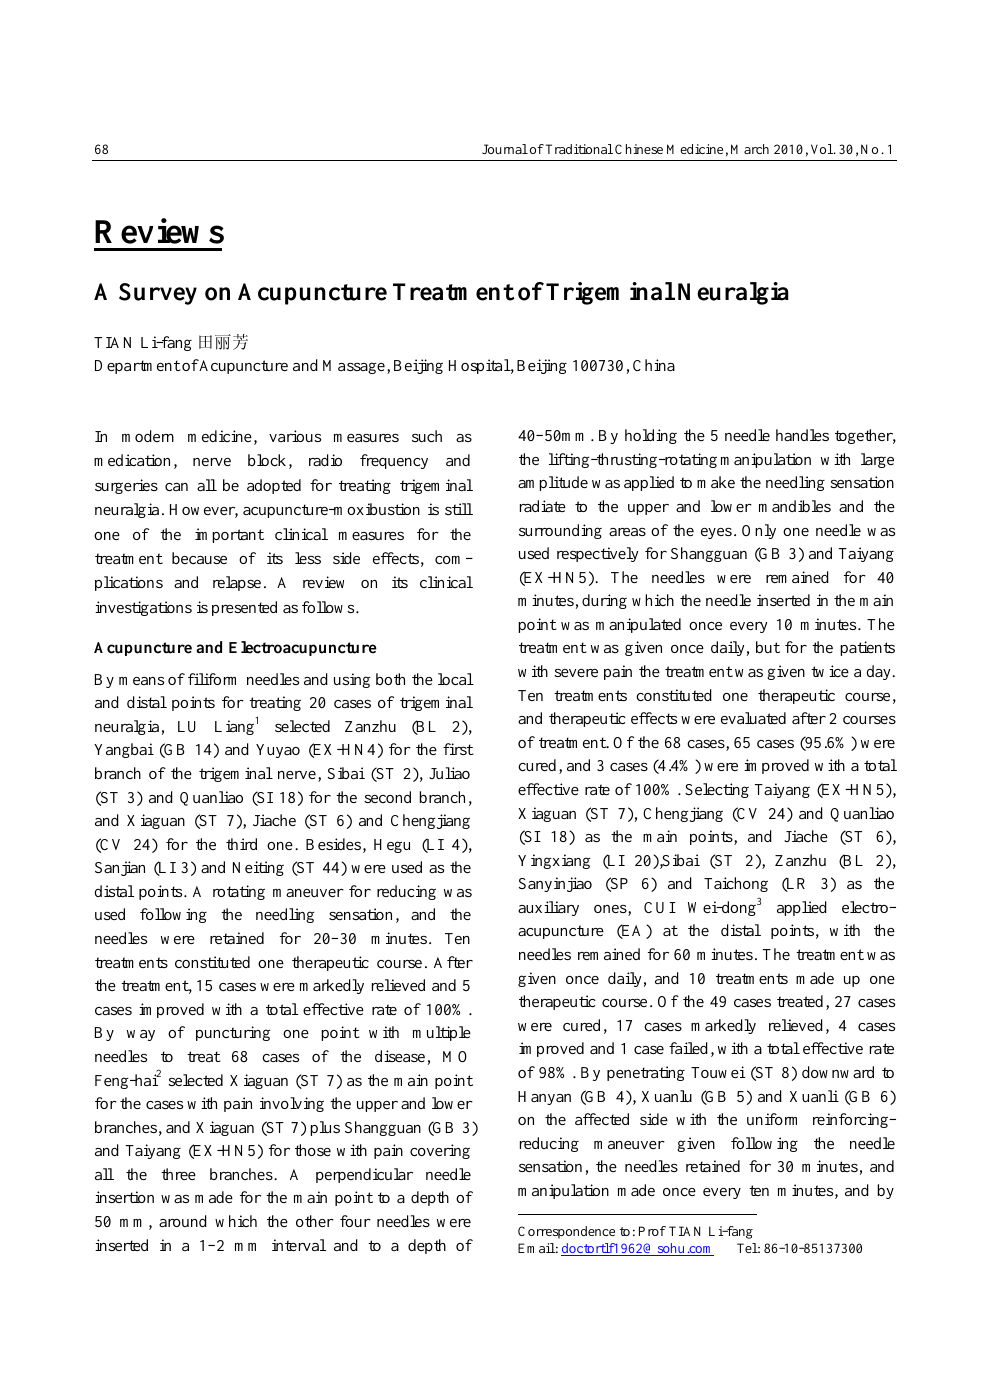 A Survey on Acupuncture Treatment of Trigeminal Neuralgia – topic of